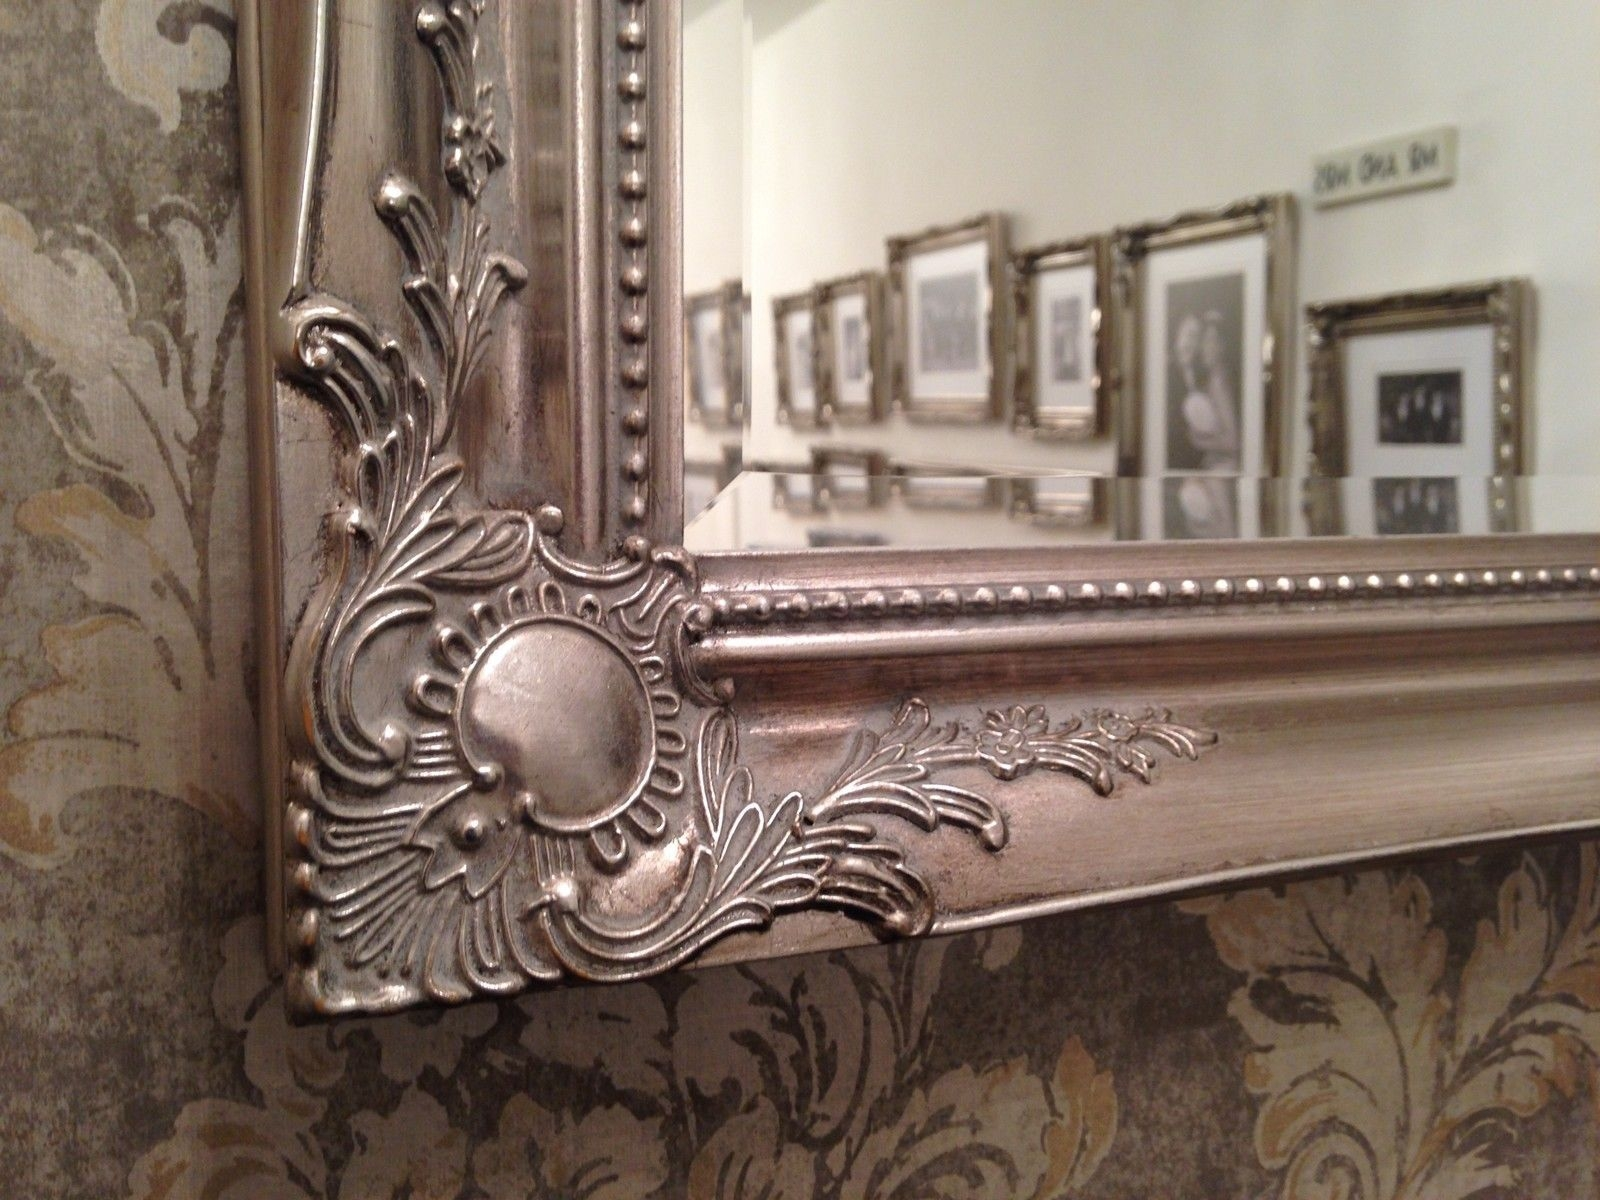 Antique Silver Shab Chic Ornate Decorative Over Mantle Wall Mirror Pertaining To Large Antique Silver Mirror (View 12 of 15)